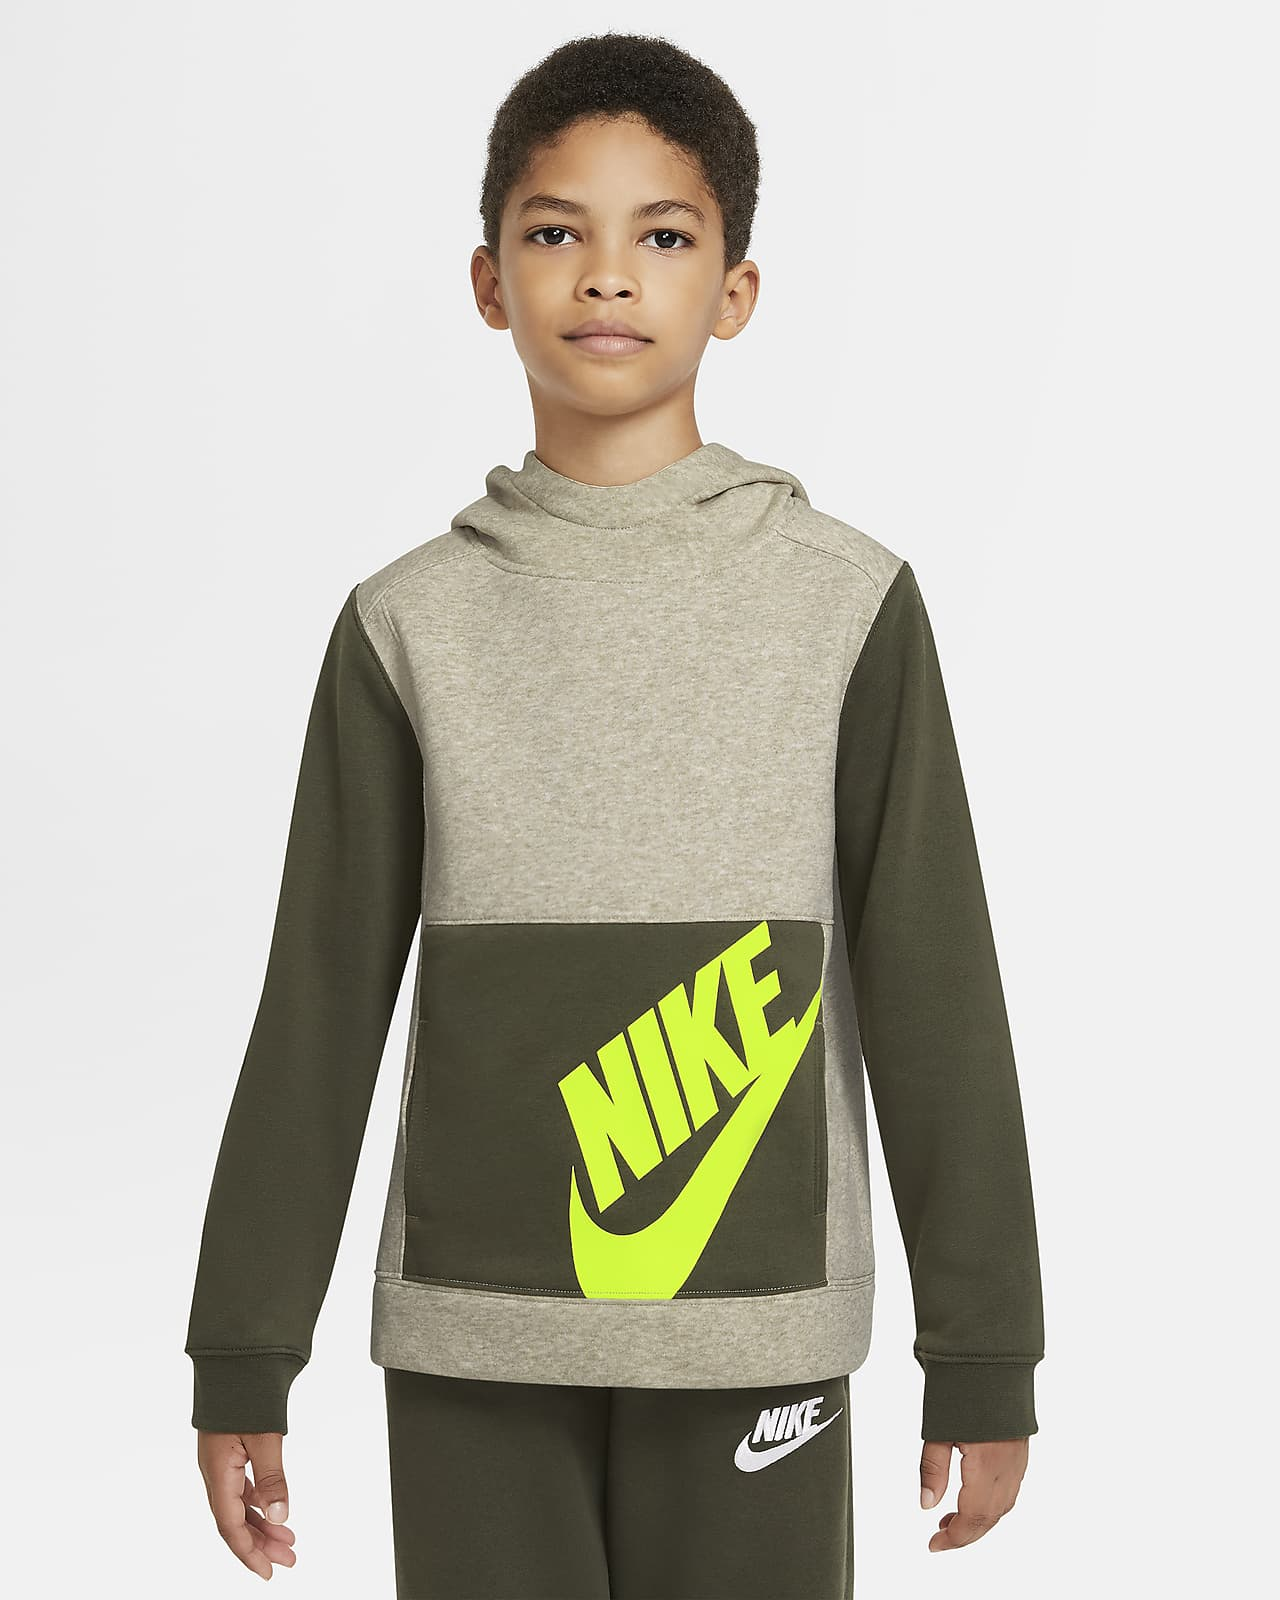 Nike Pullover Jungs